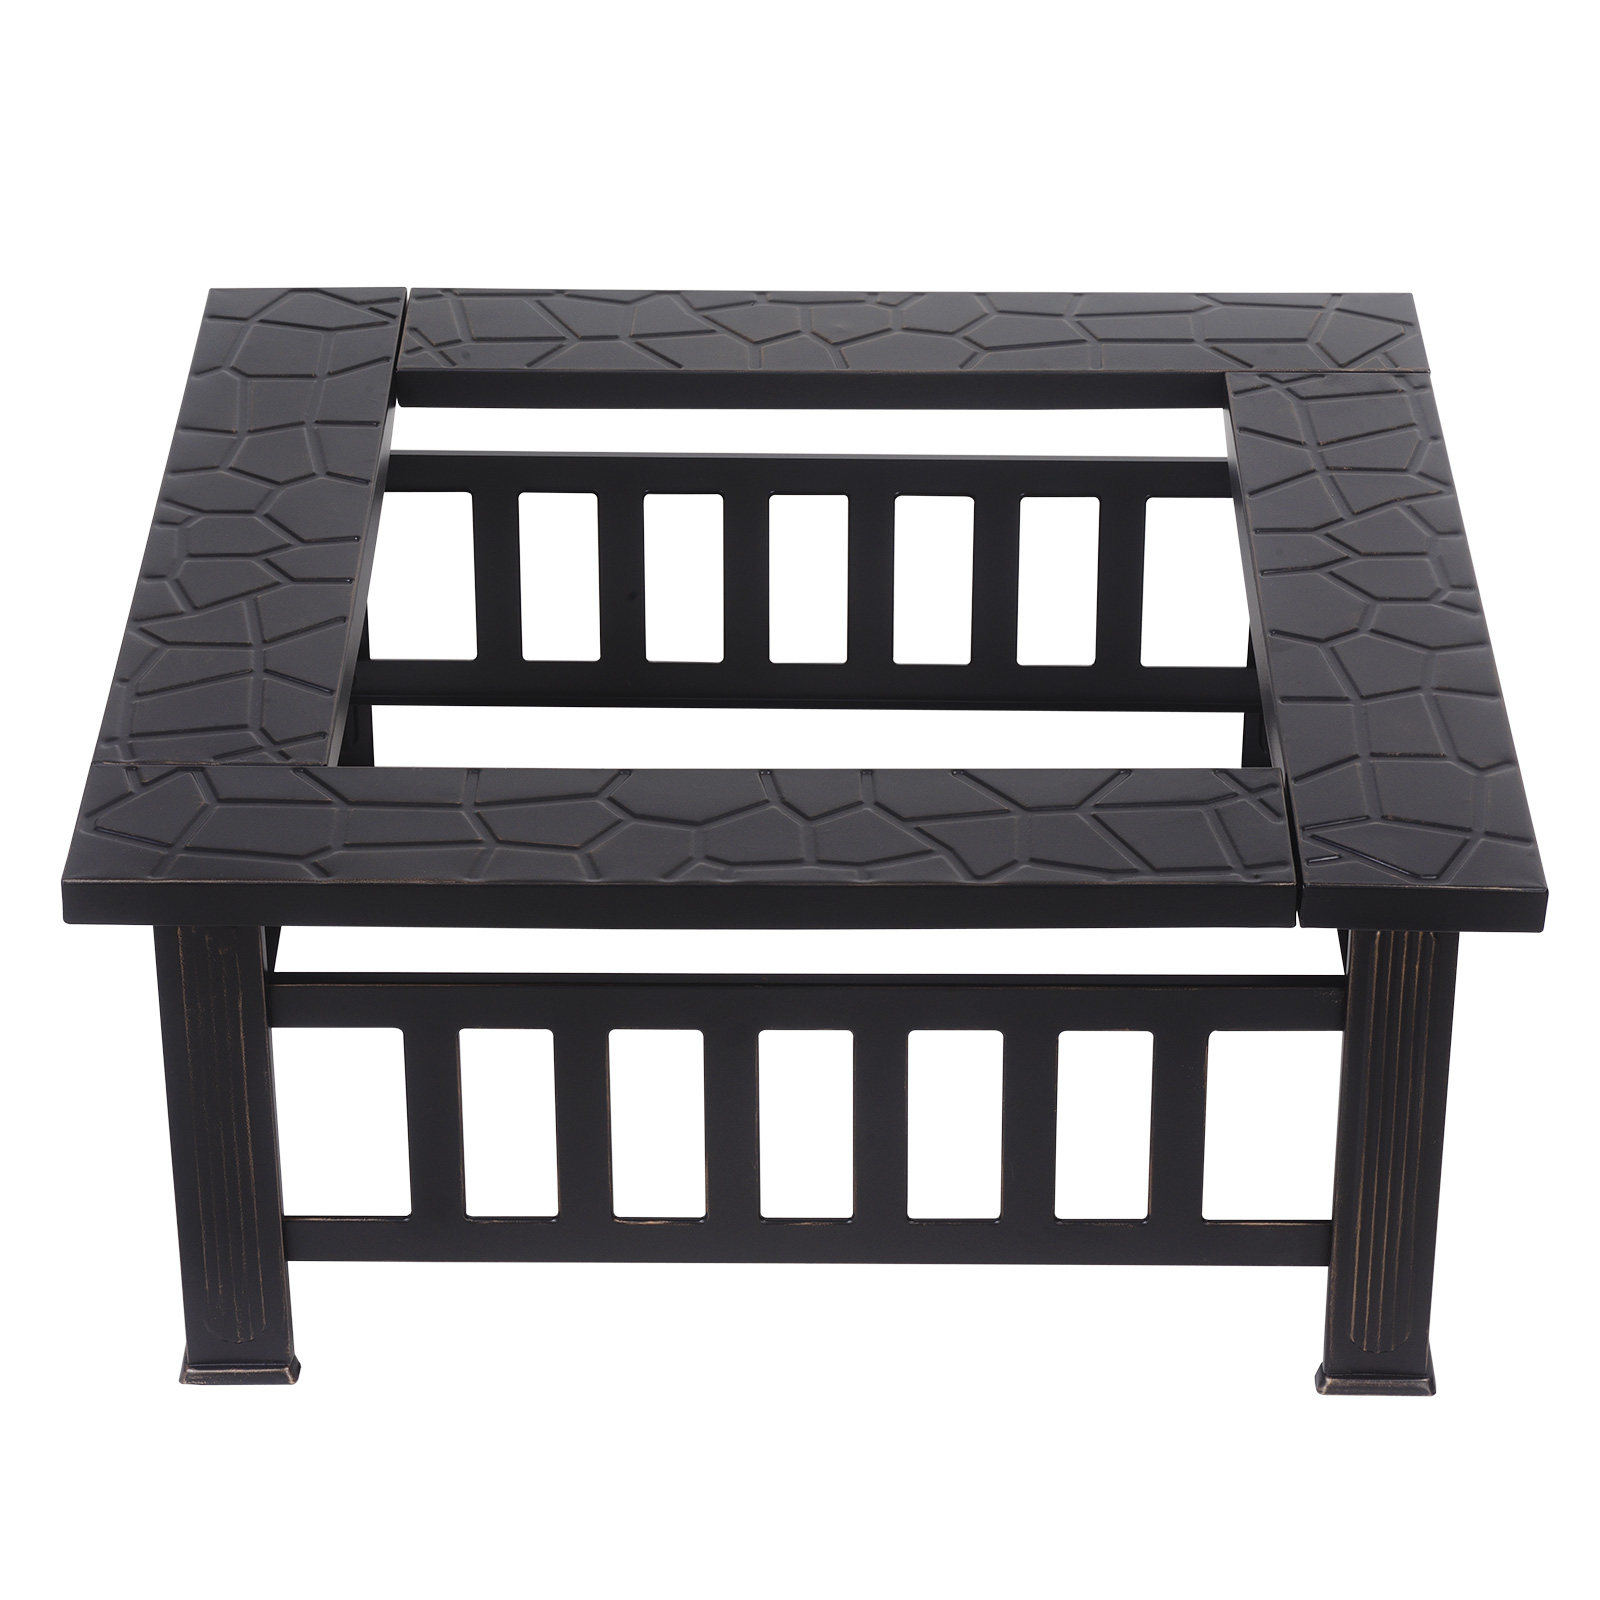 square fire pit metal table outdoor fireplace patio heater bbq grill side stove multi drawer chest rustic coffee set rectangular marble dining furniture collections garden storage